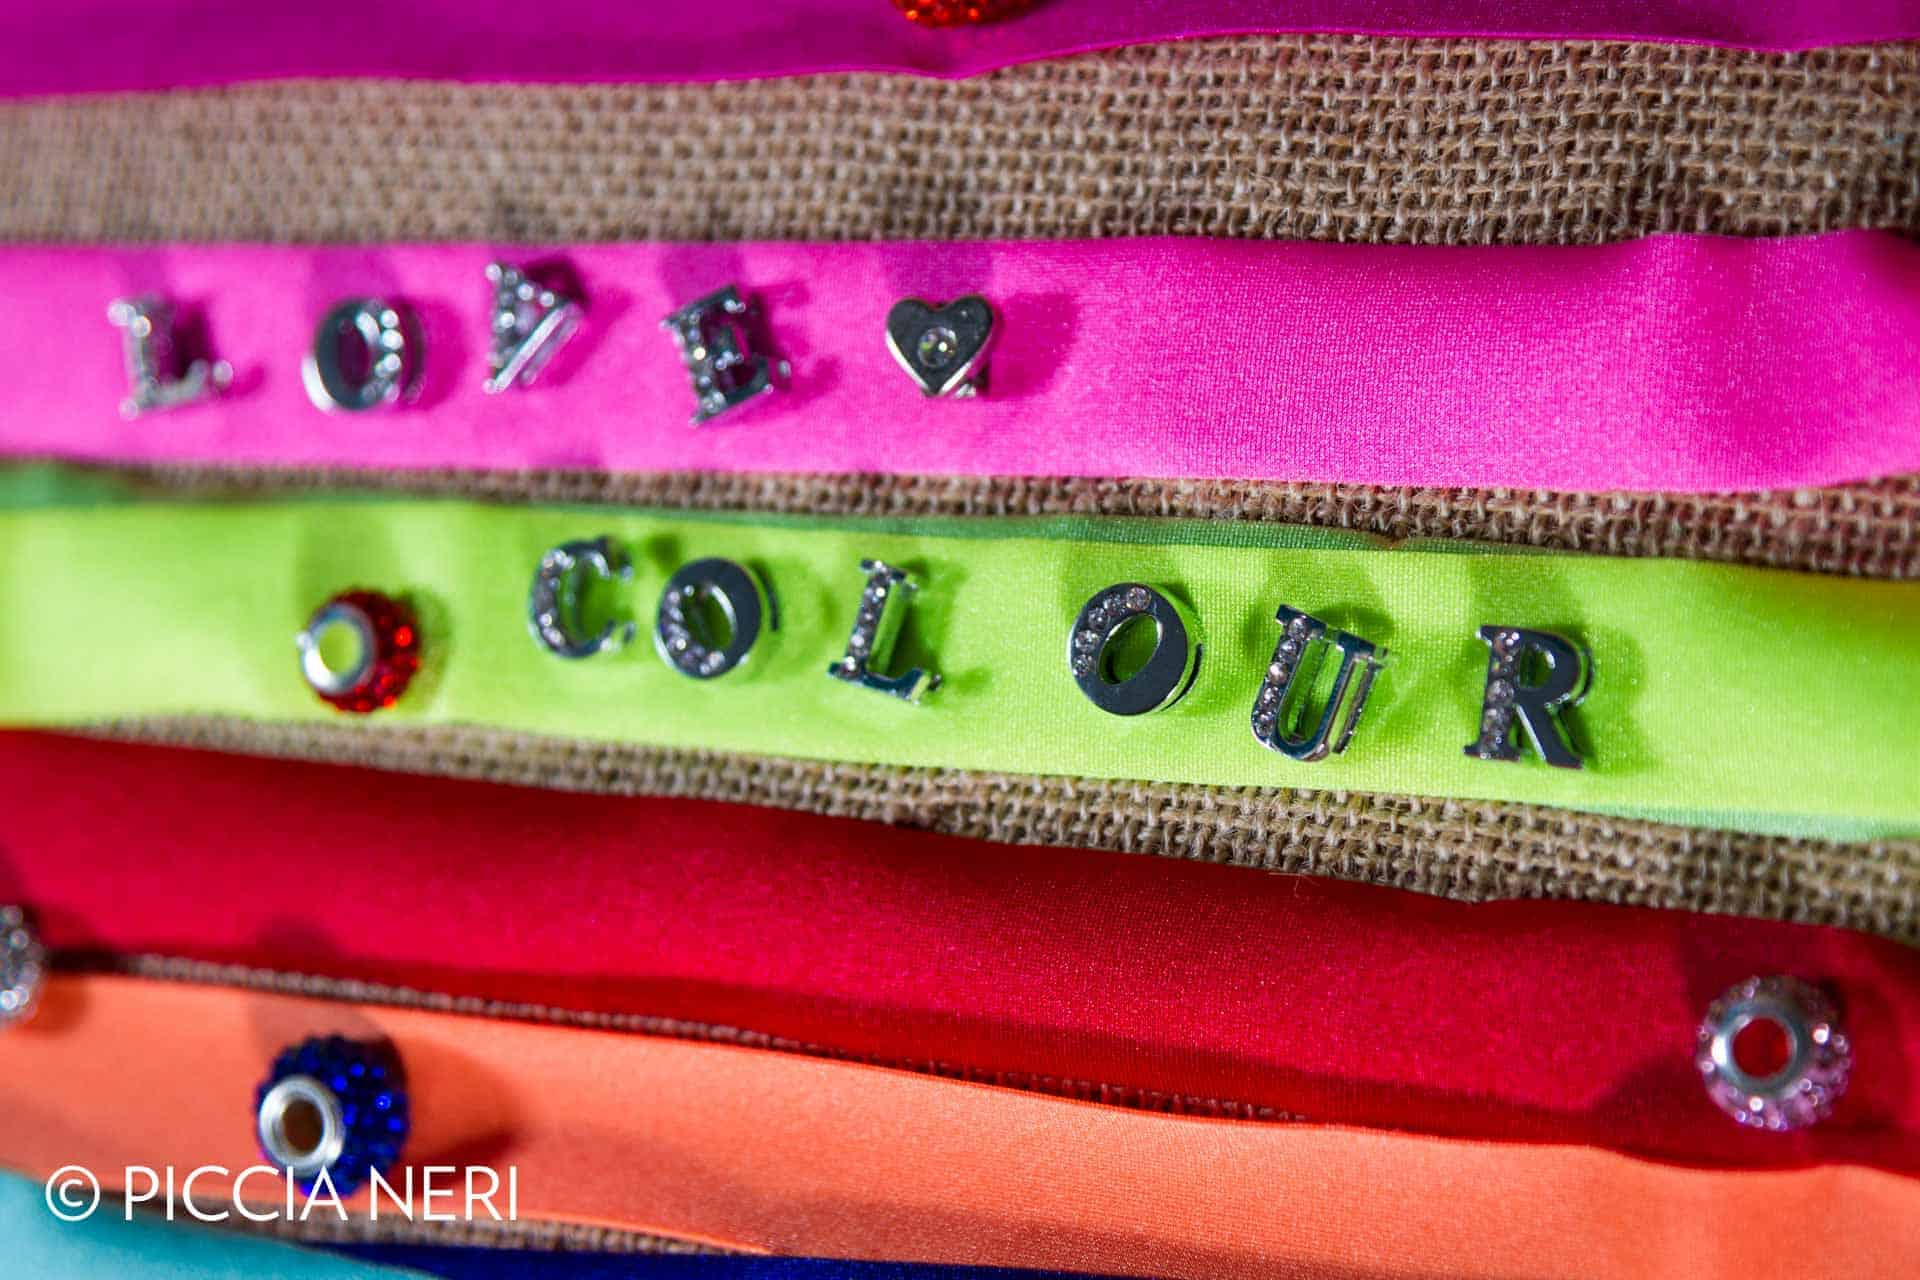 Lycra ribbons in bright, fluorescent colours with studded metal letters spelling 'Love Colour'. Photo by Piccia Neri, all rights reserved.